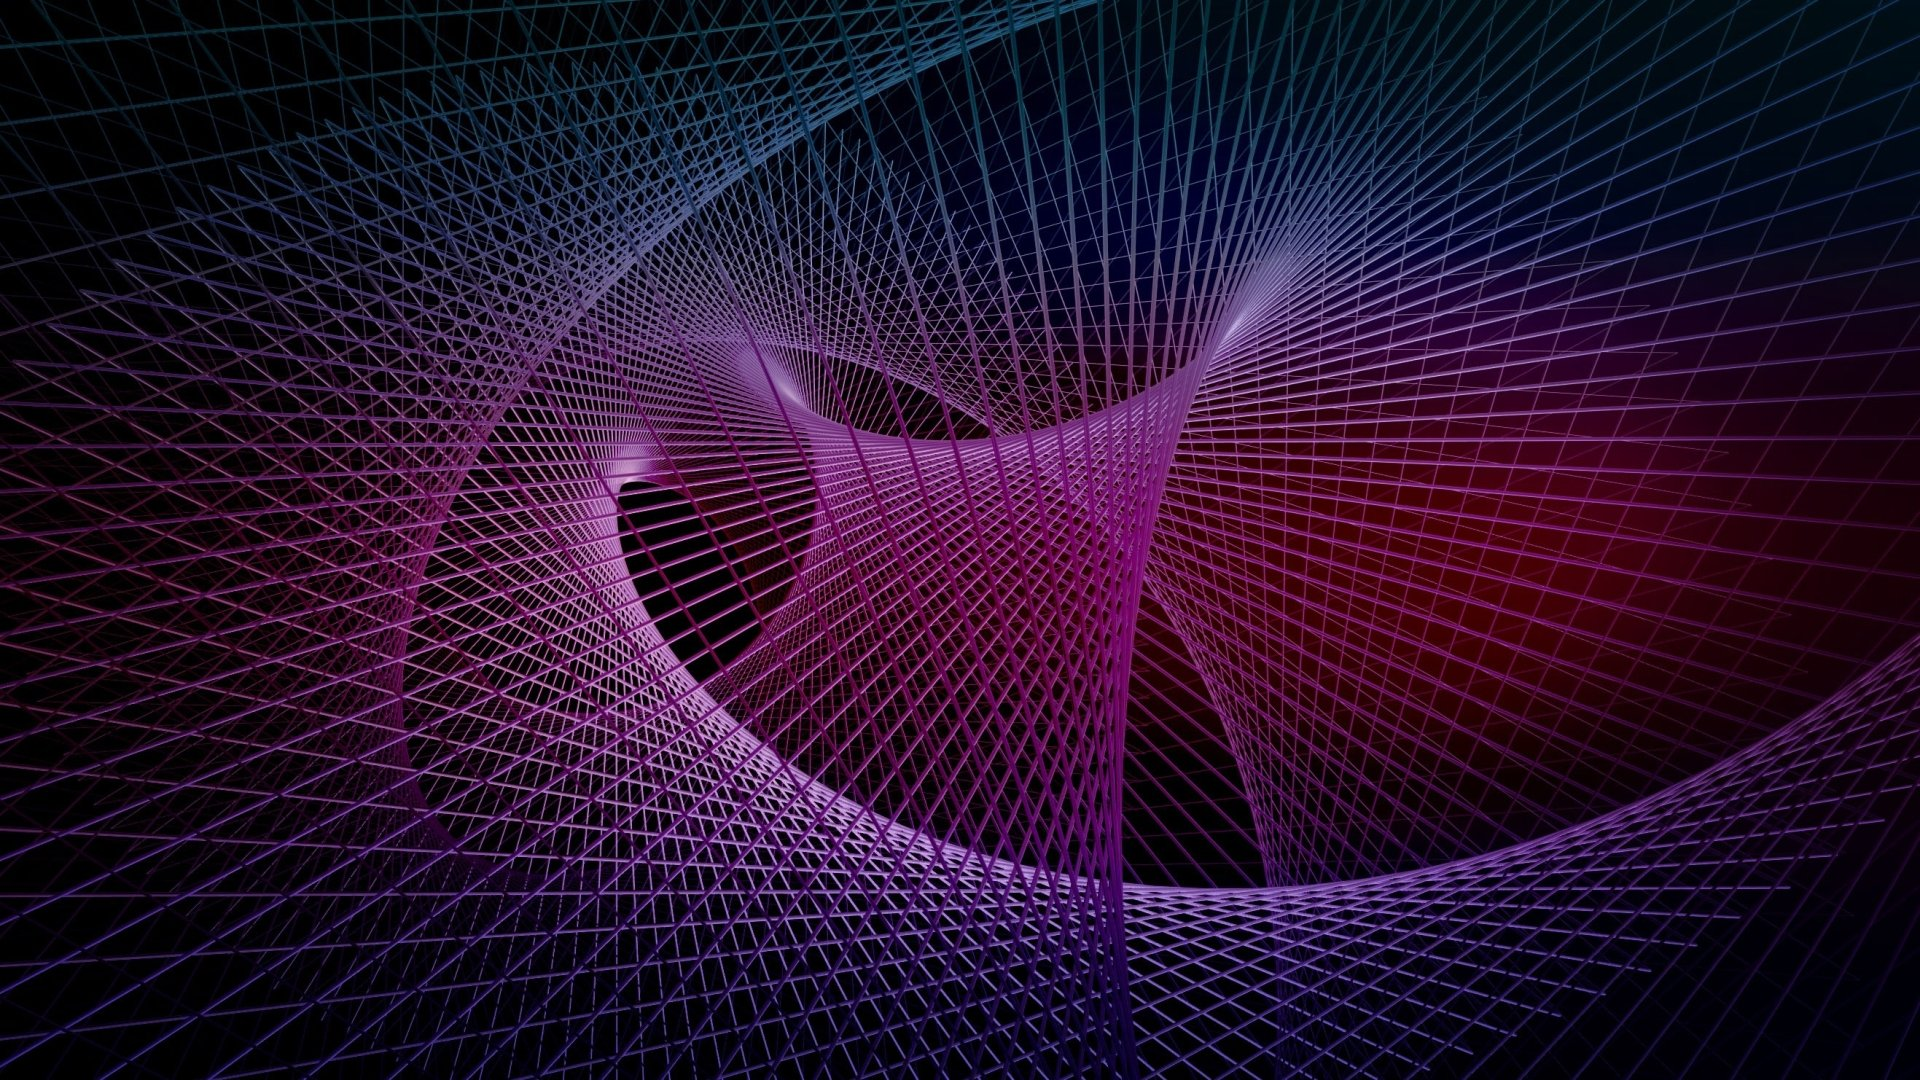 Abstract - Fractal  Purple Geometry Wallpaper